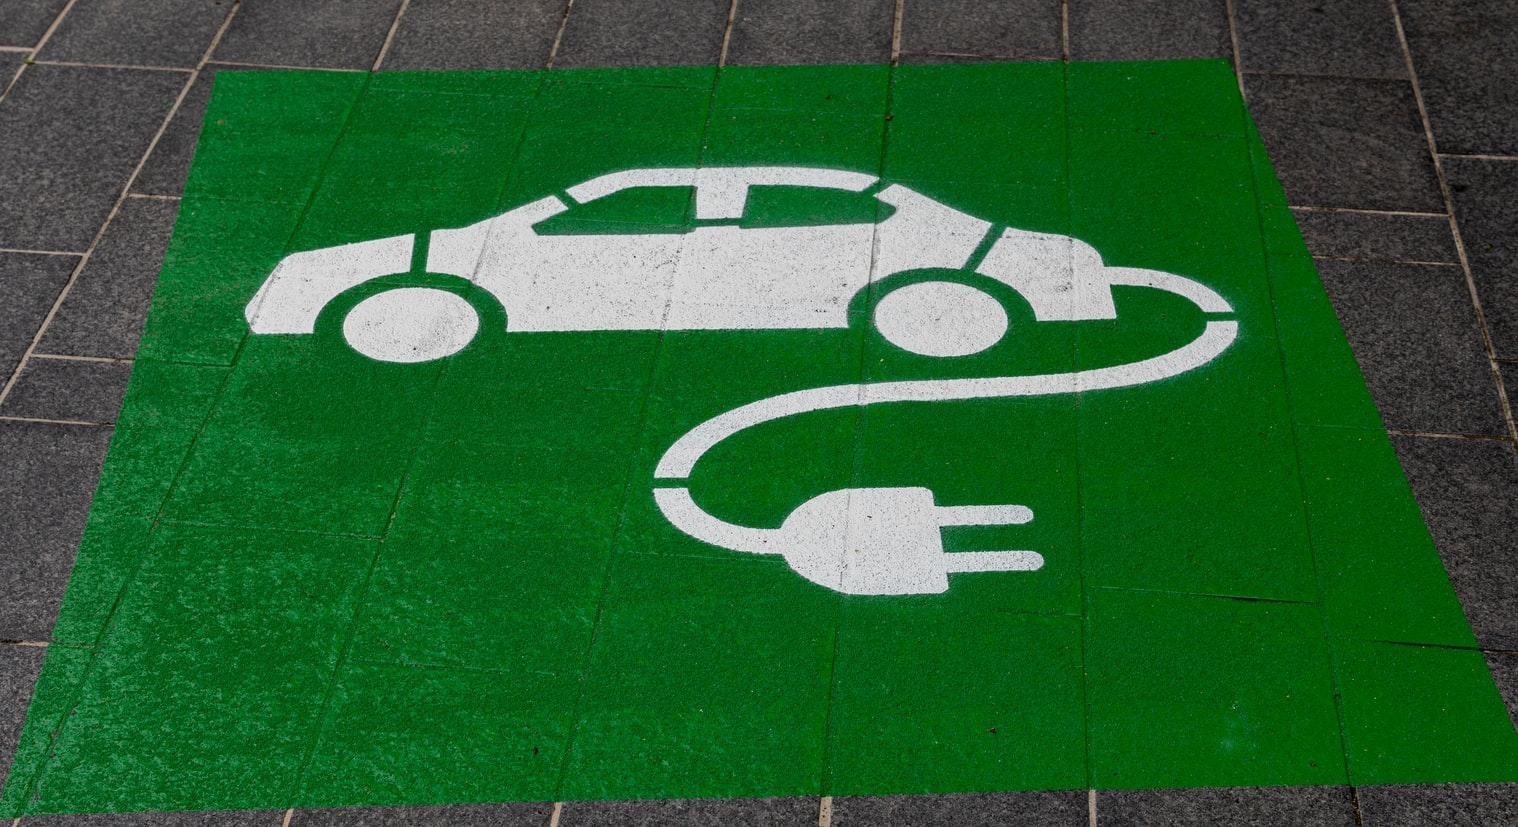 EU to push new standards for 'greenest' car batteries on earth